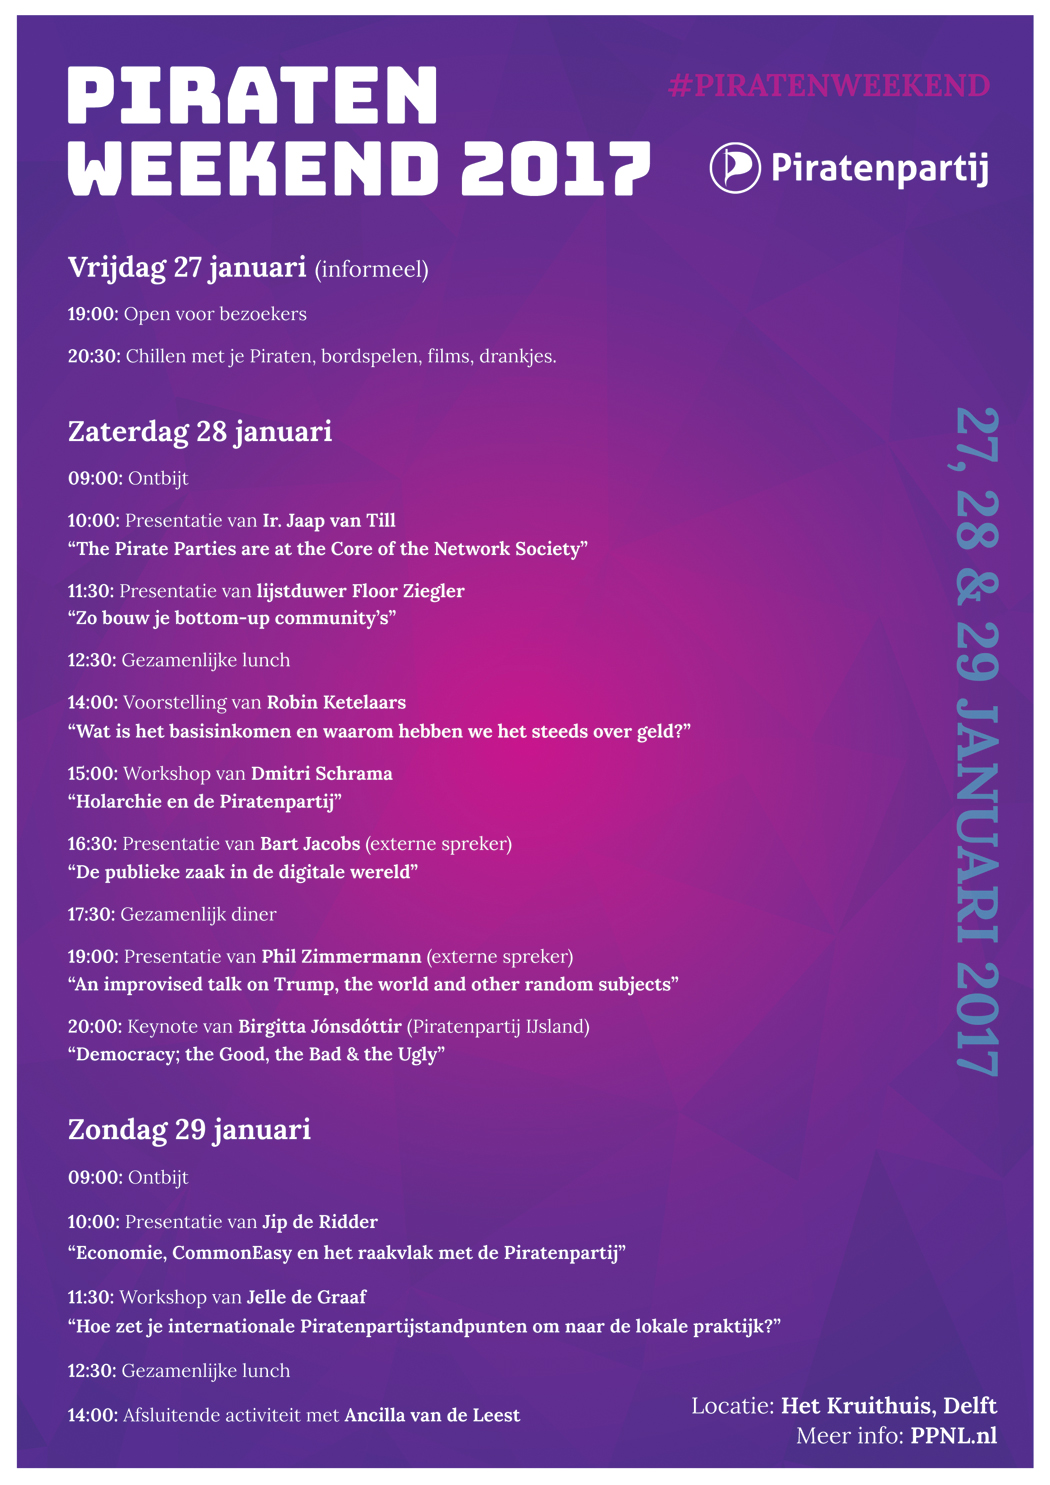 Piratenweekend 2017 - Programma flyer